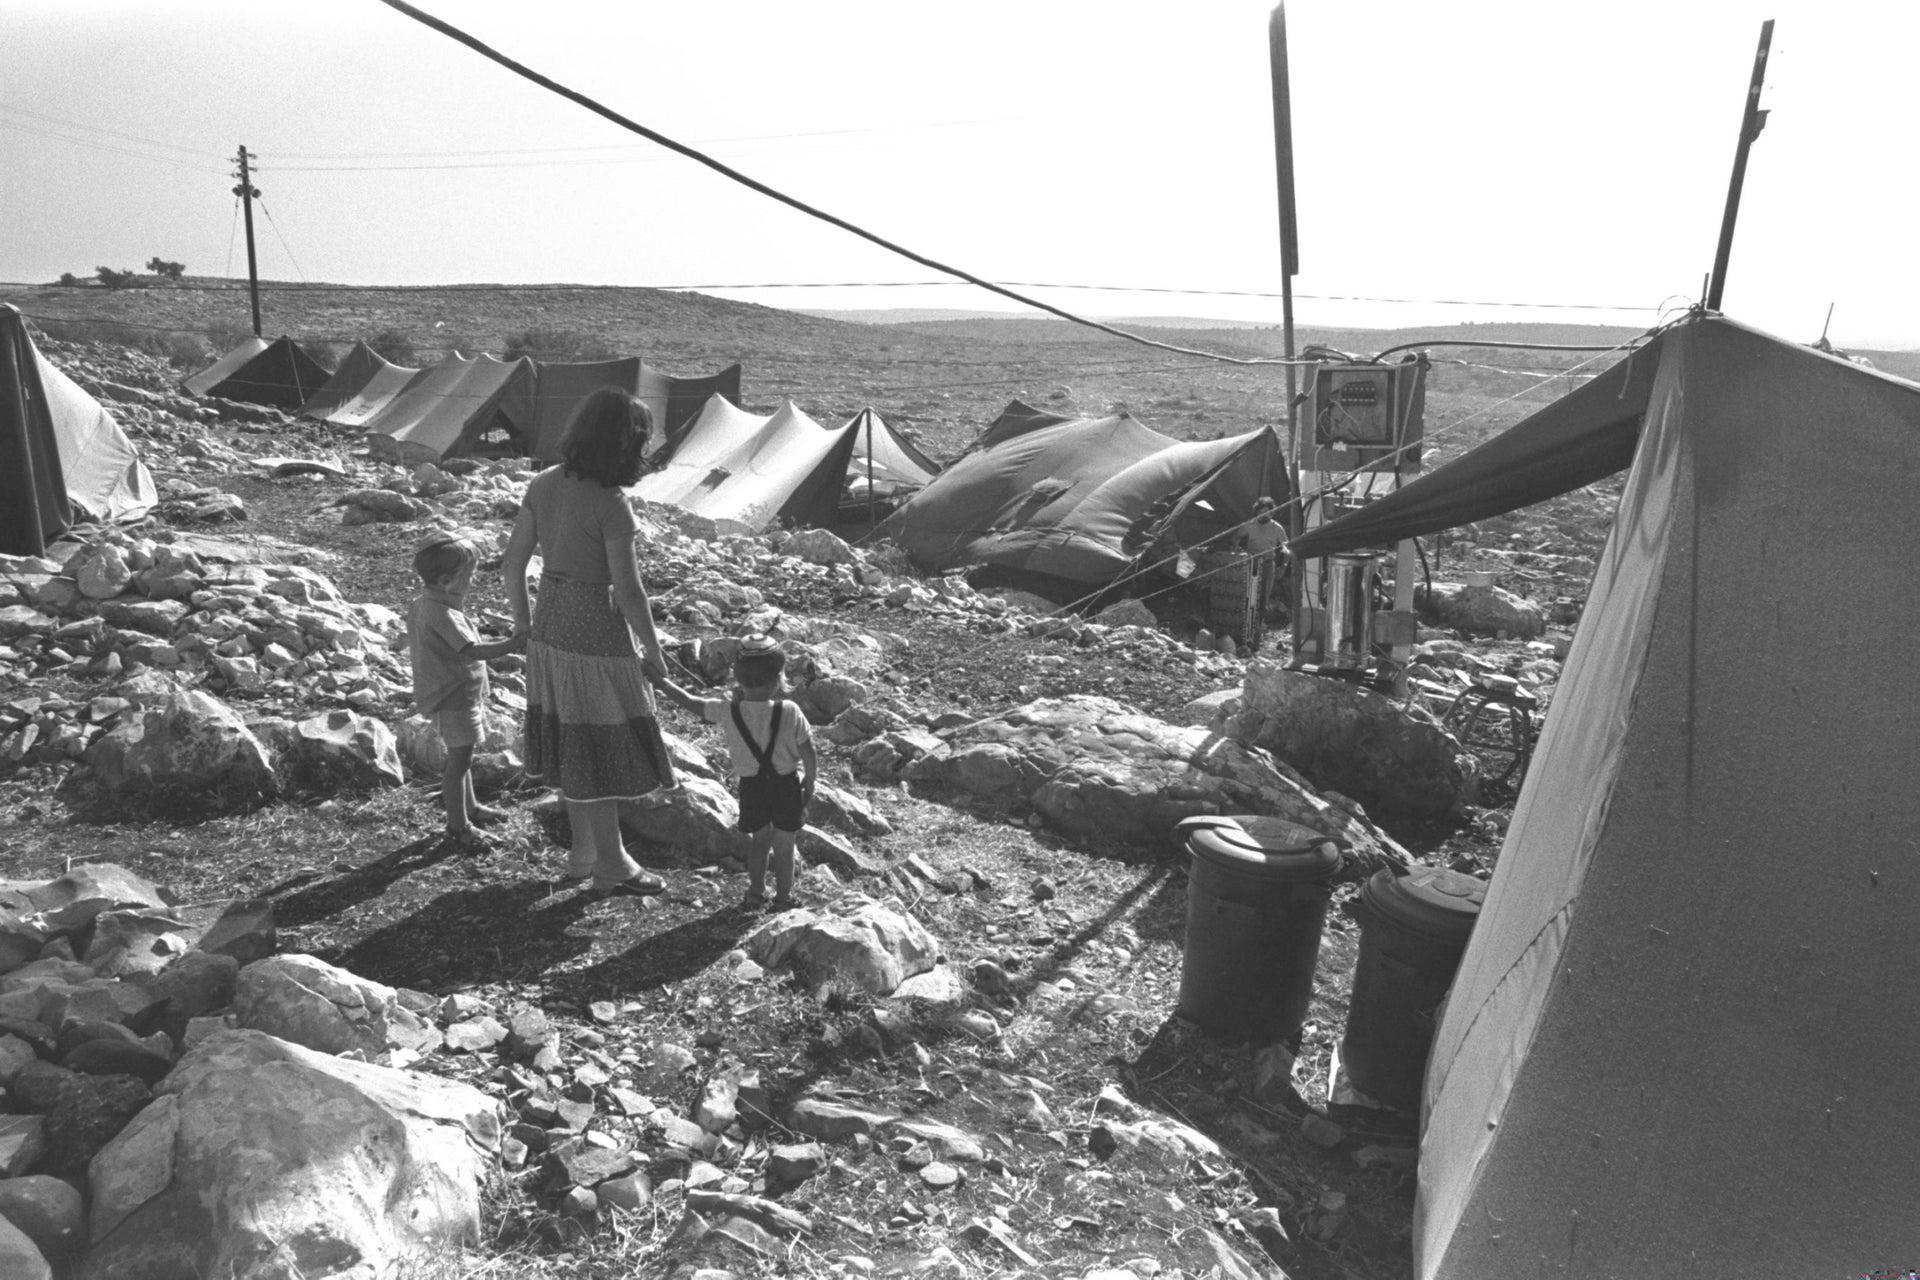 The Peerim outpost in the West Bank, 1977.